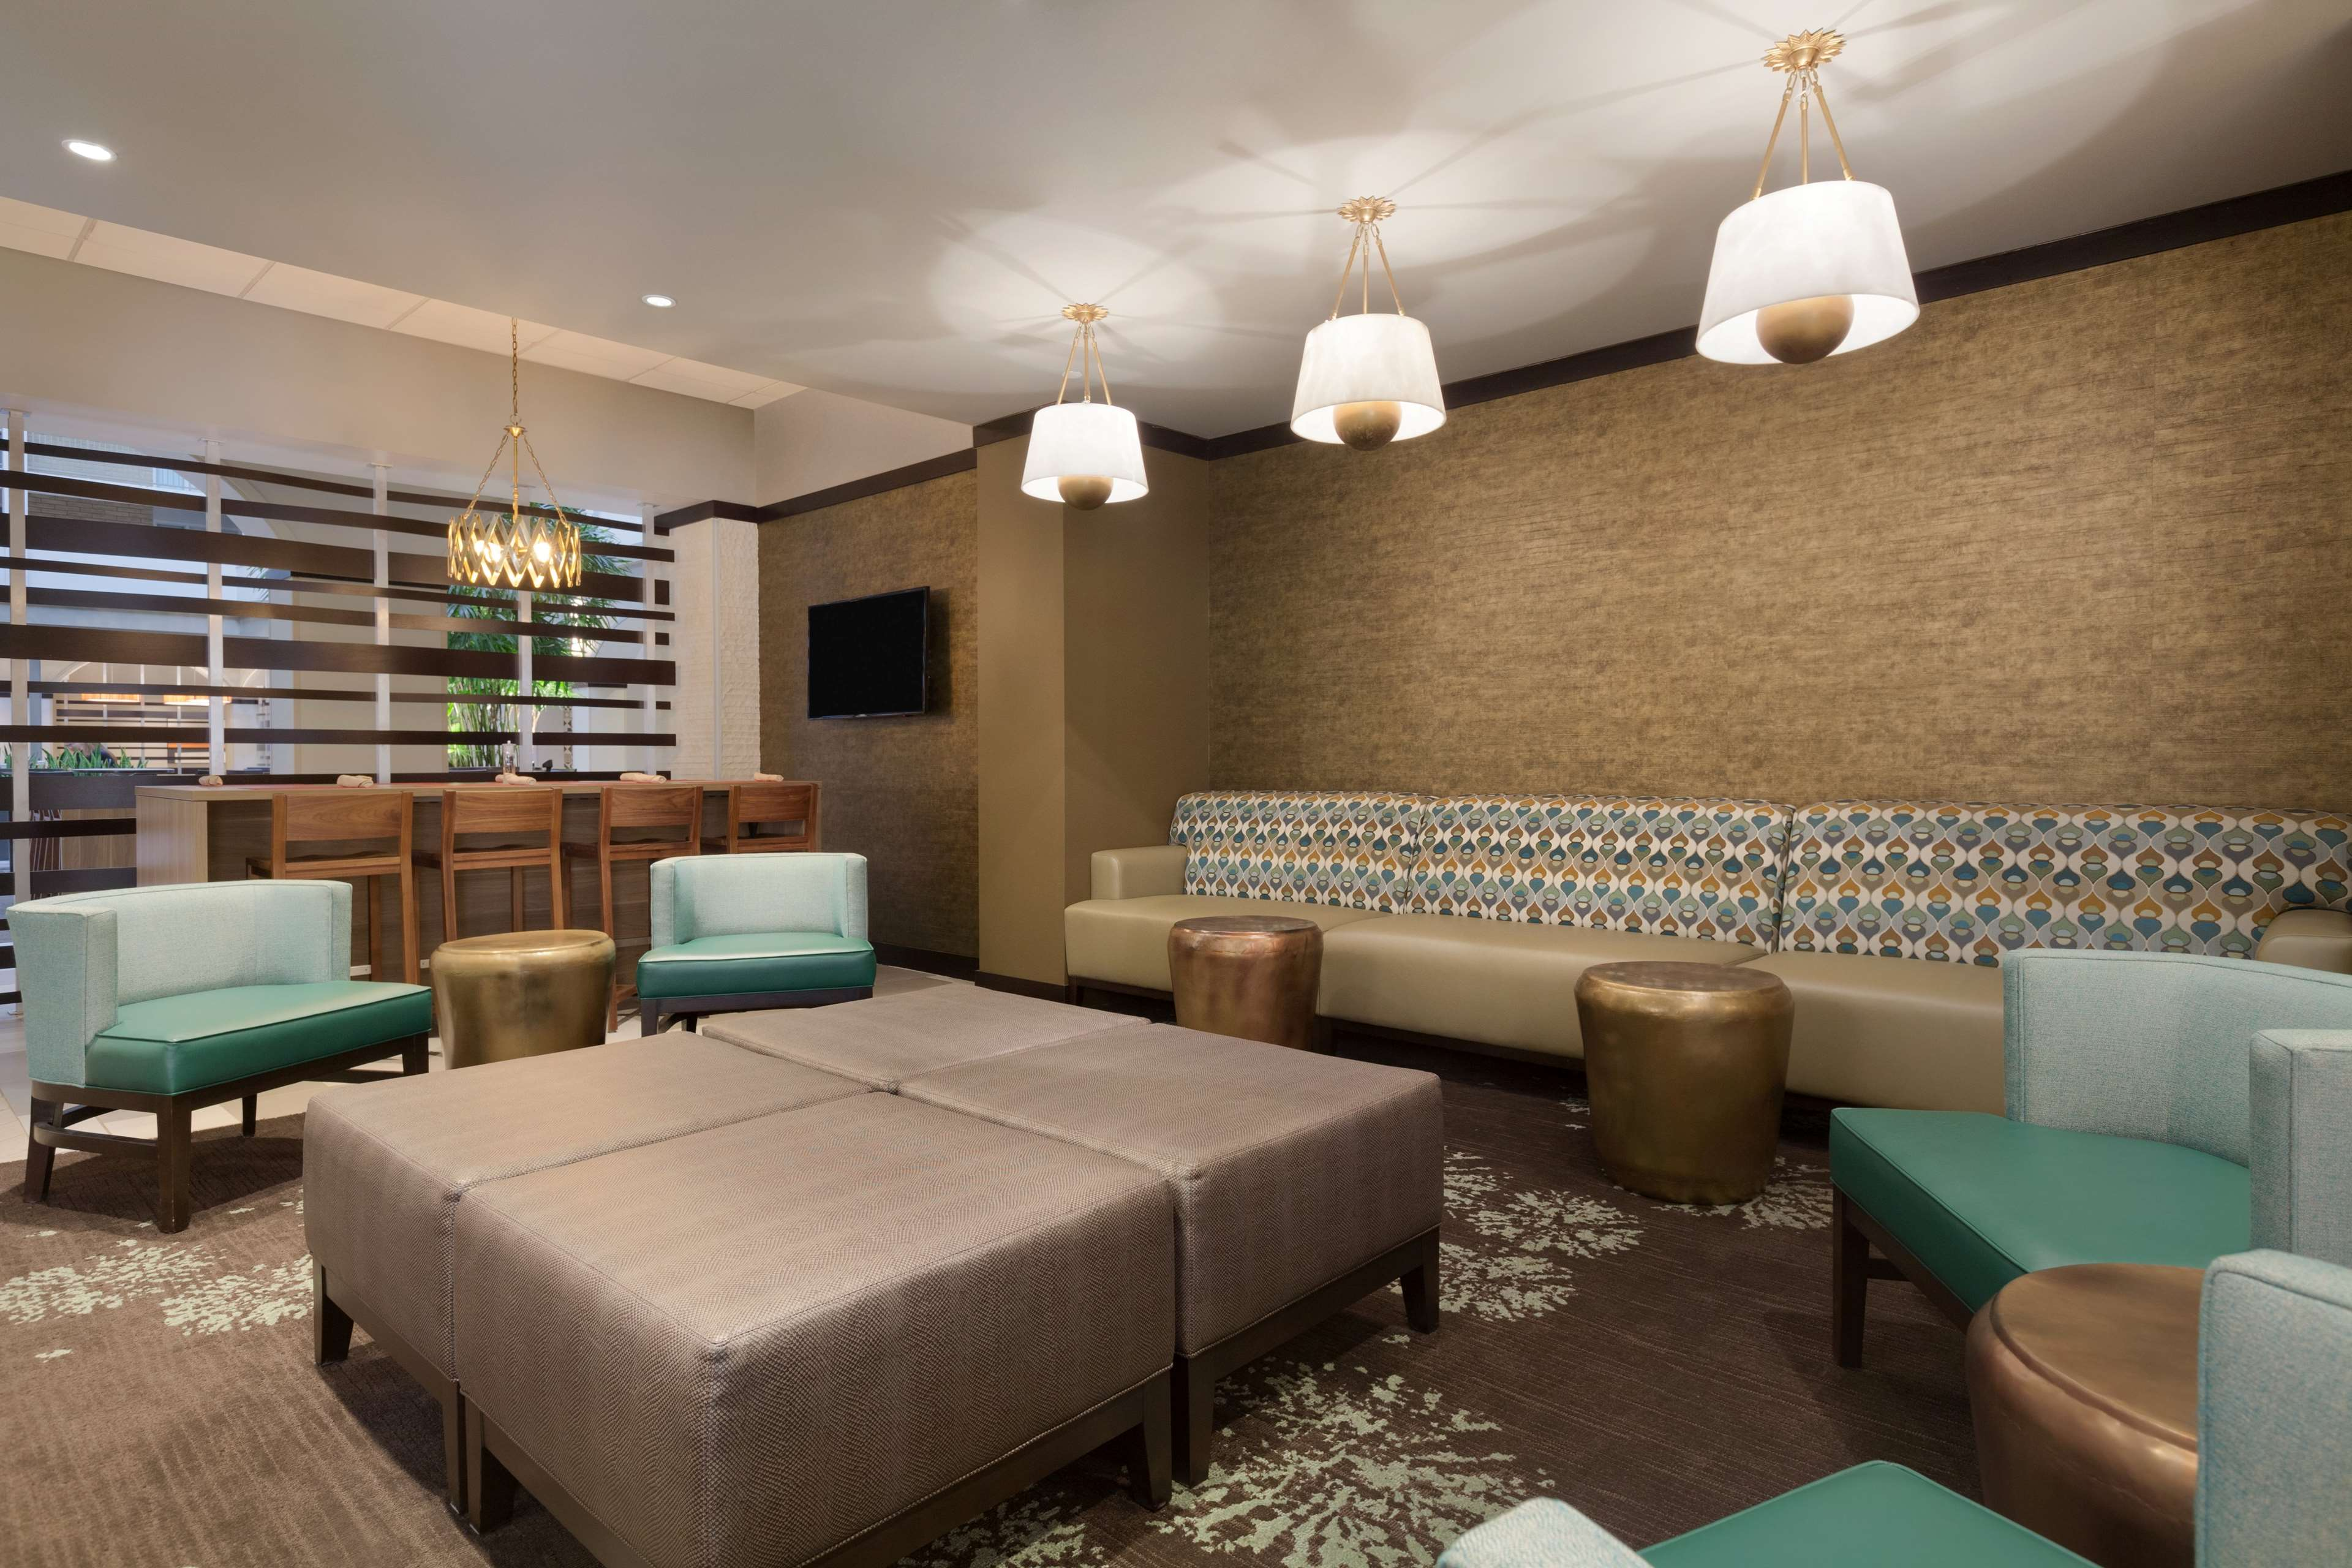 Embassy Suites by Hilton Jacksonville Baymeadows image 3